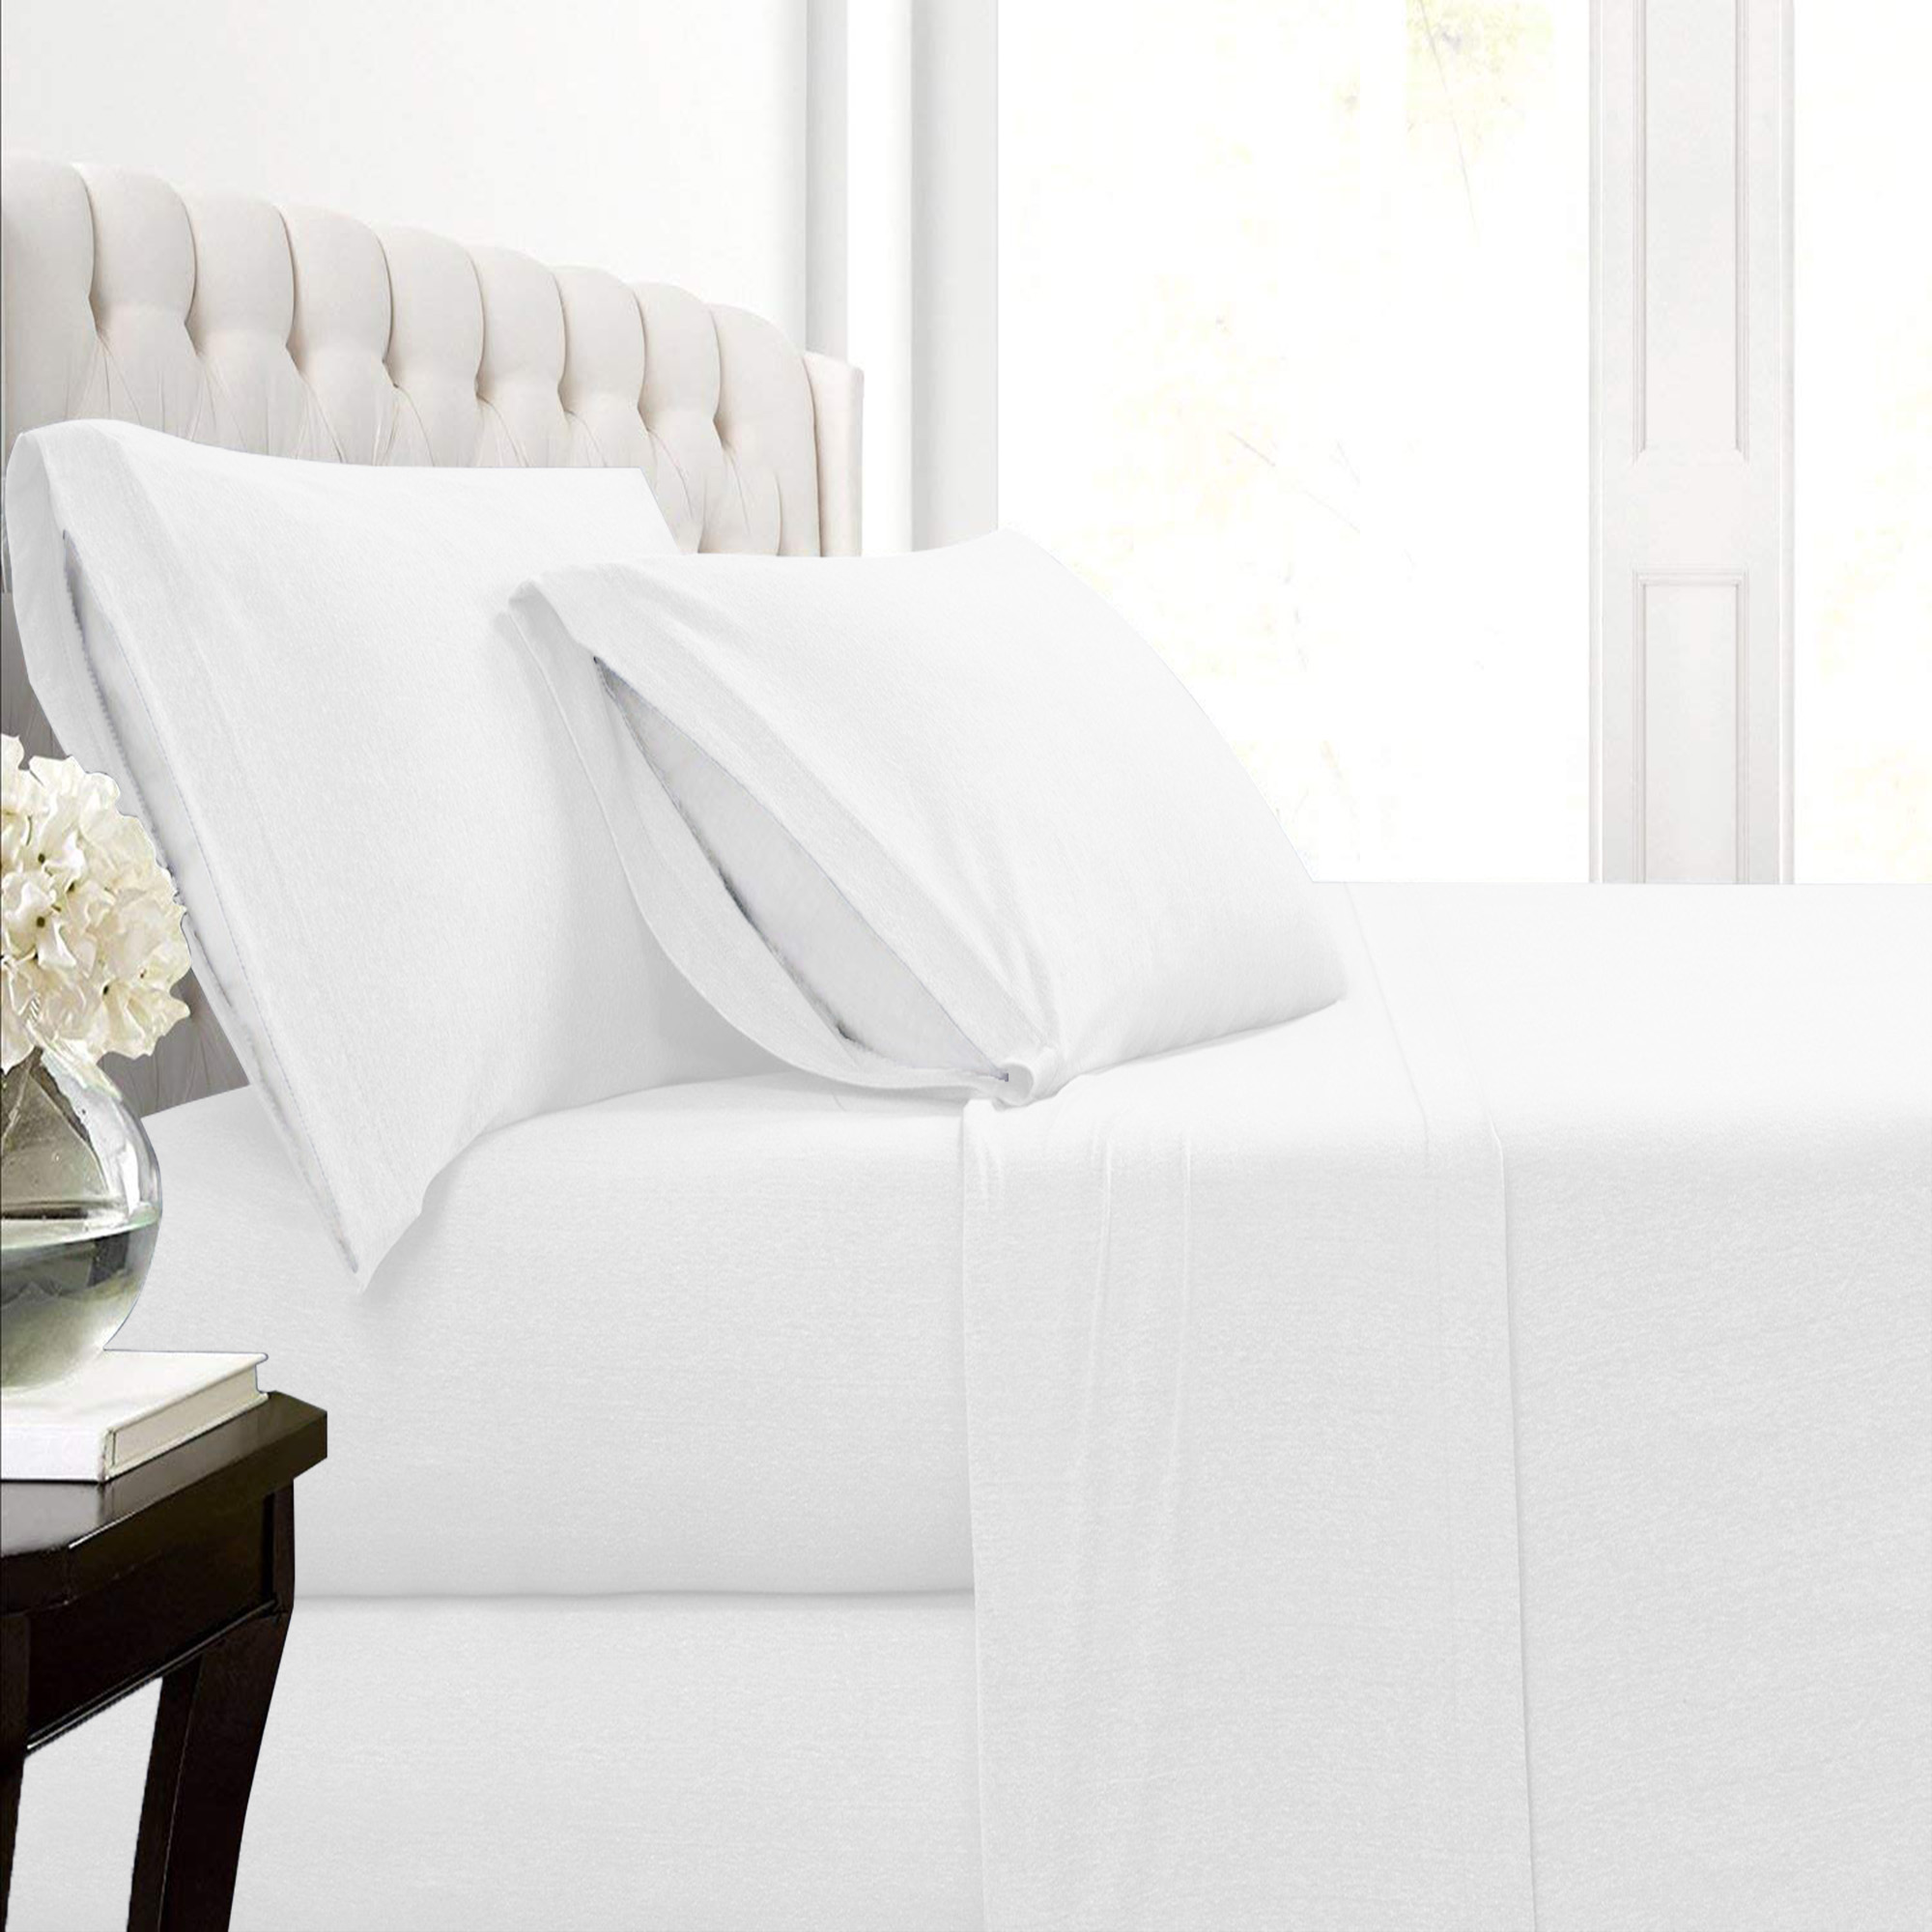 Malina Cotton Jersey Bed Sheet Set   Walmart.com